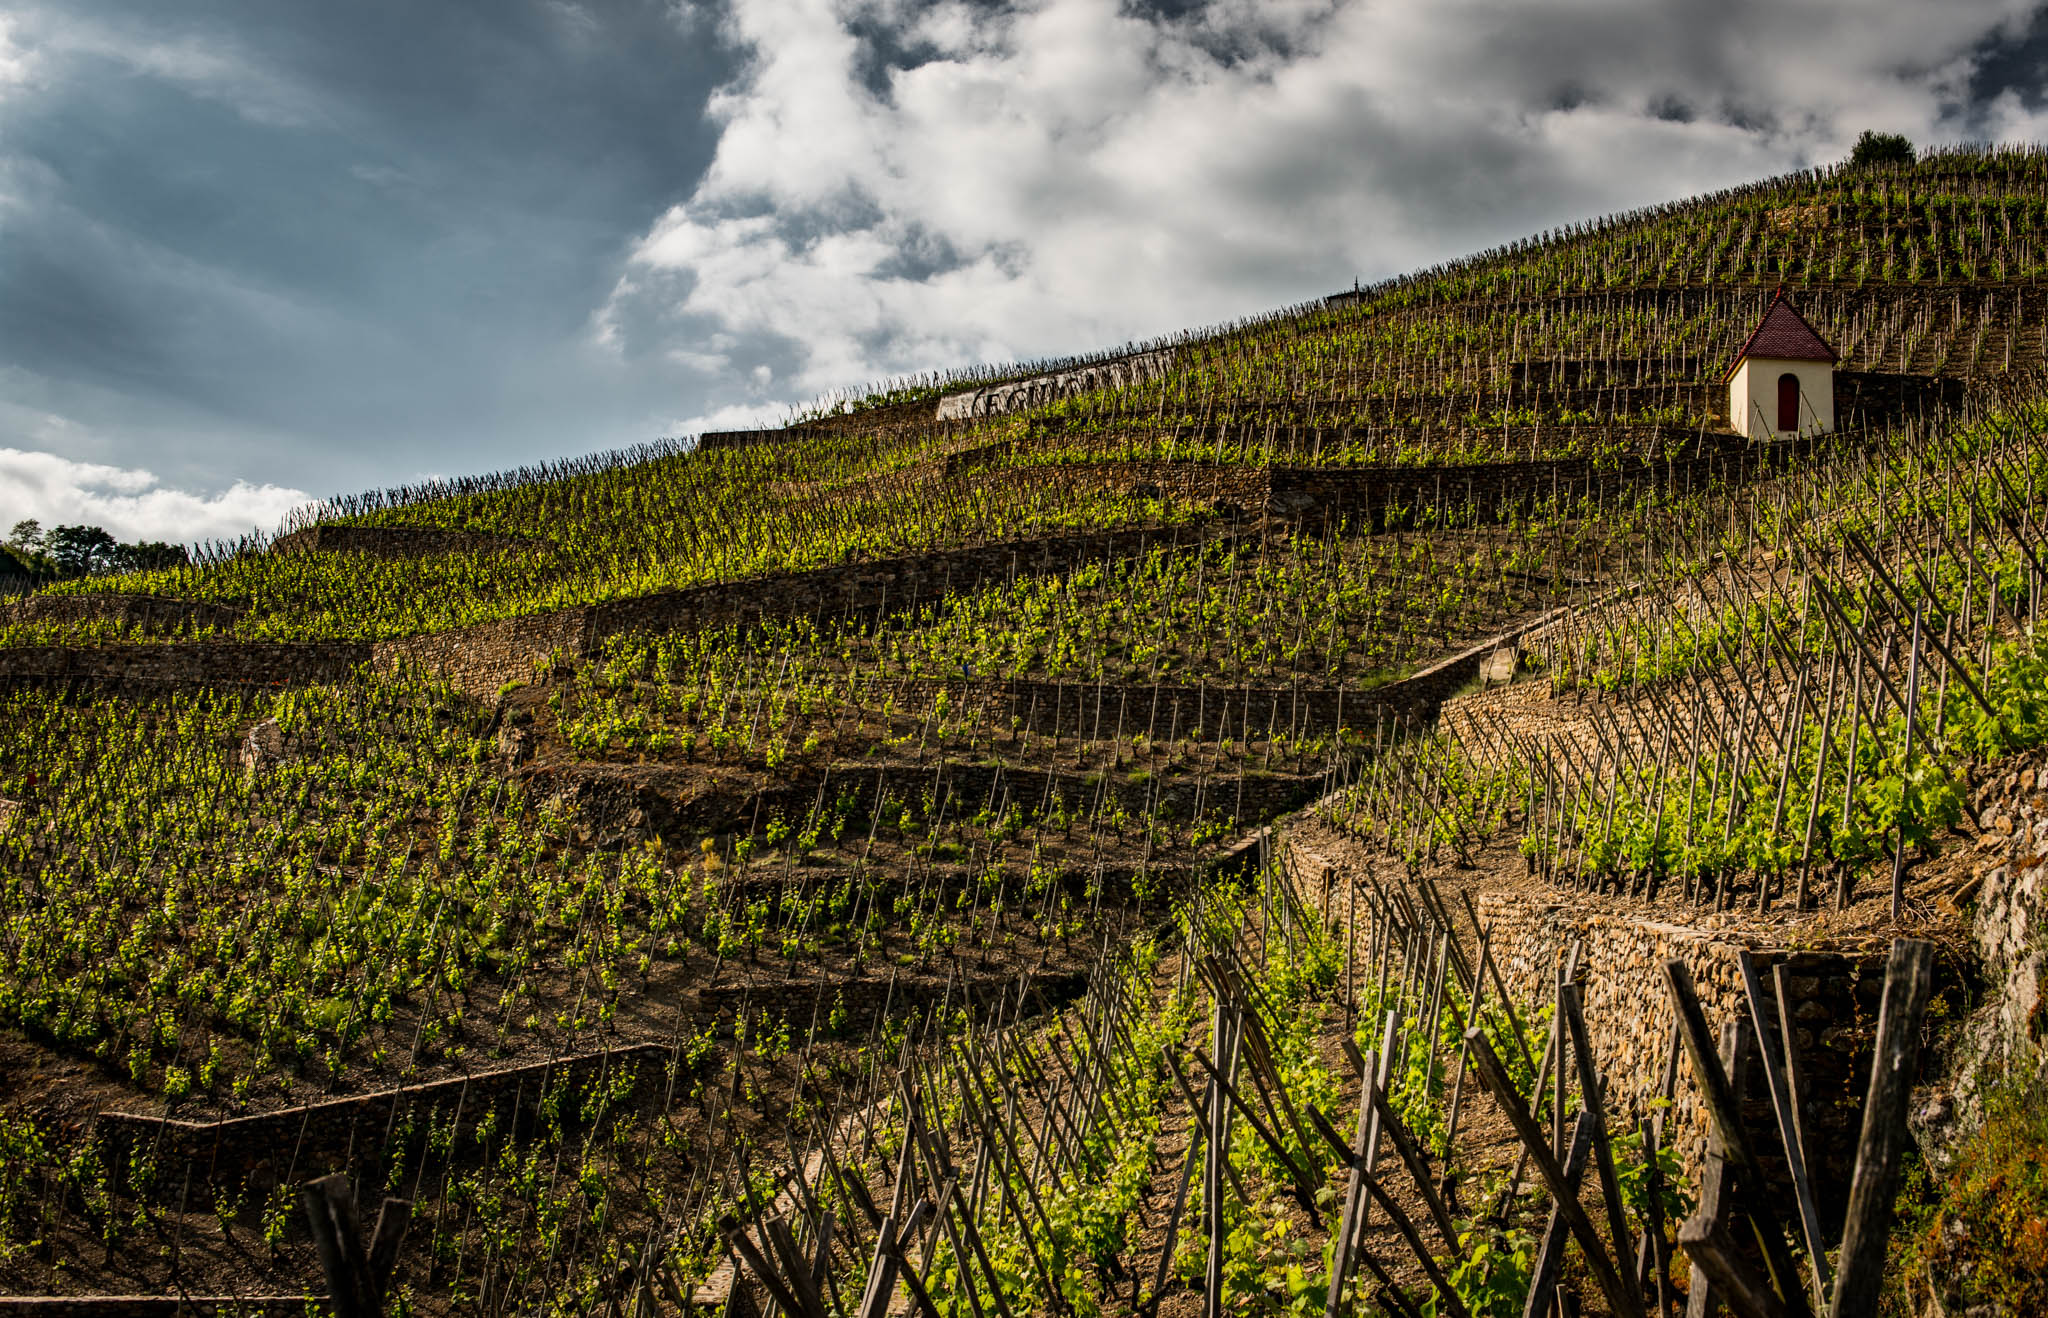 France : Northern Rhone : Guigal's plot for La Turque in Cote Rotie's Cote Brune